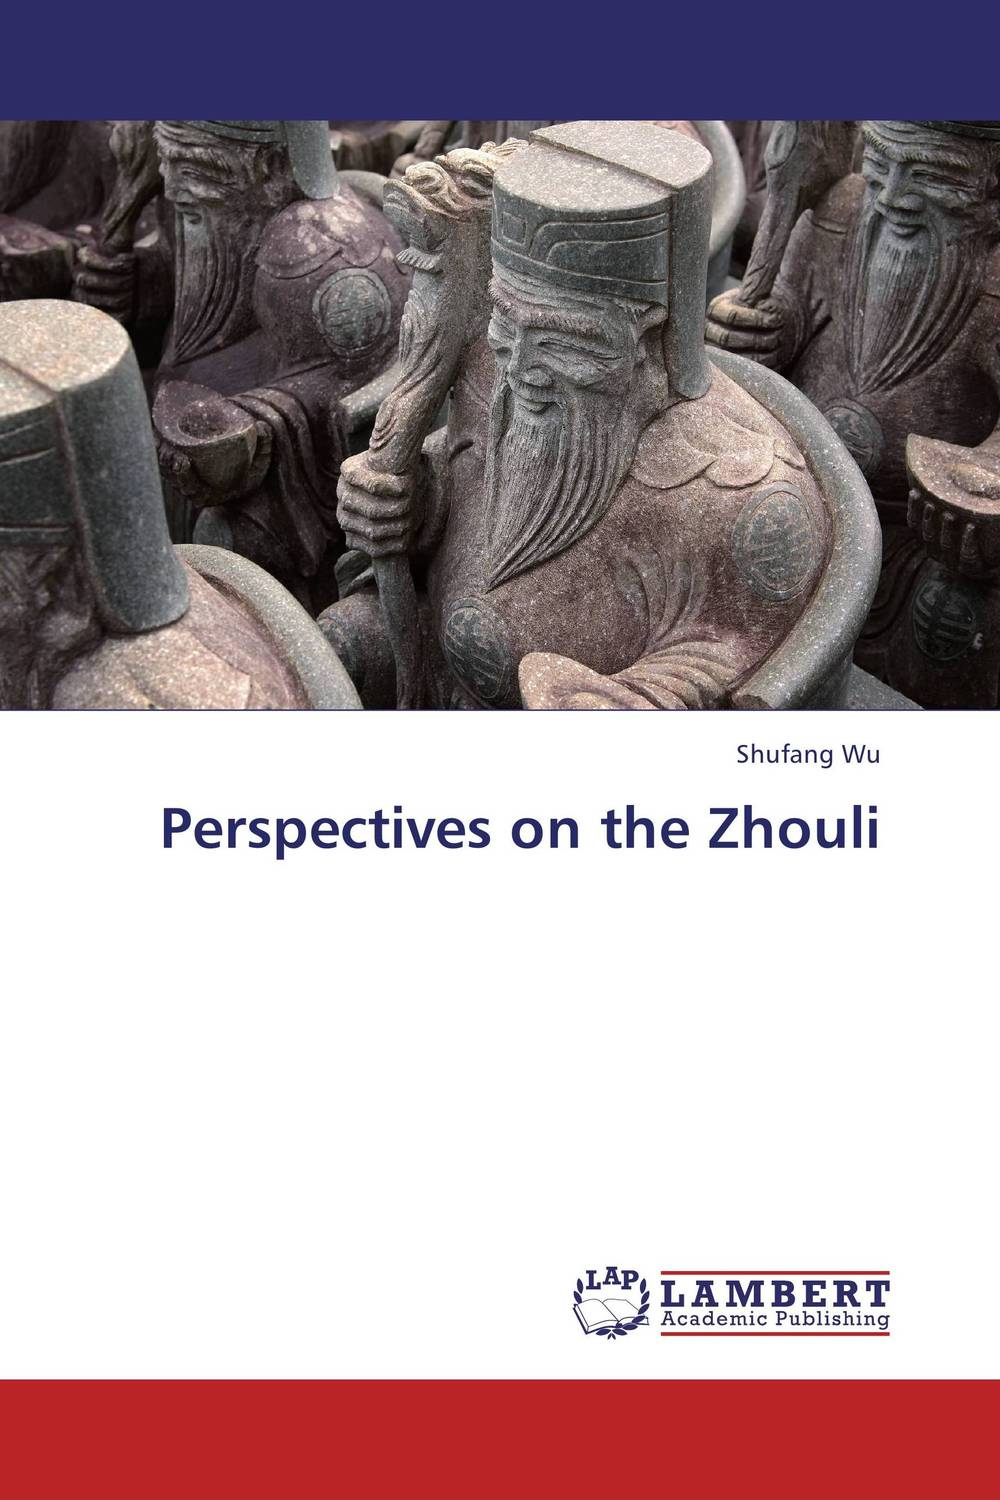 Perspectives on the Zhouli